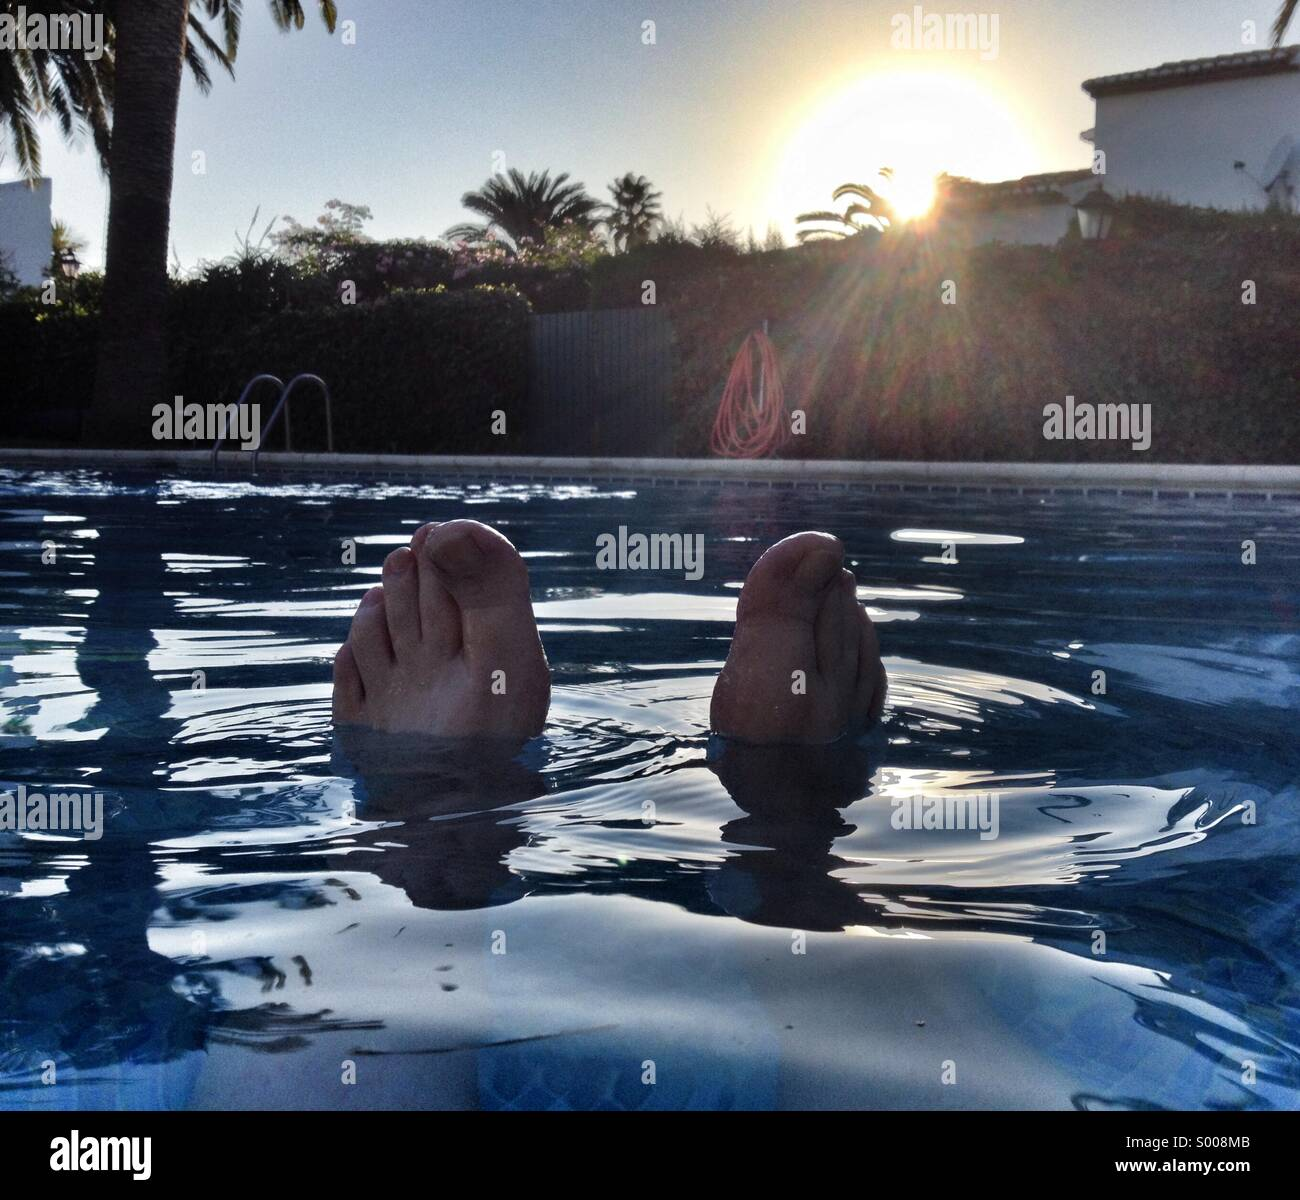 Feet sticking out from a swimming pool at a Spanish villa. - Stock Image